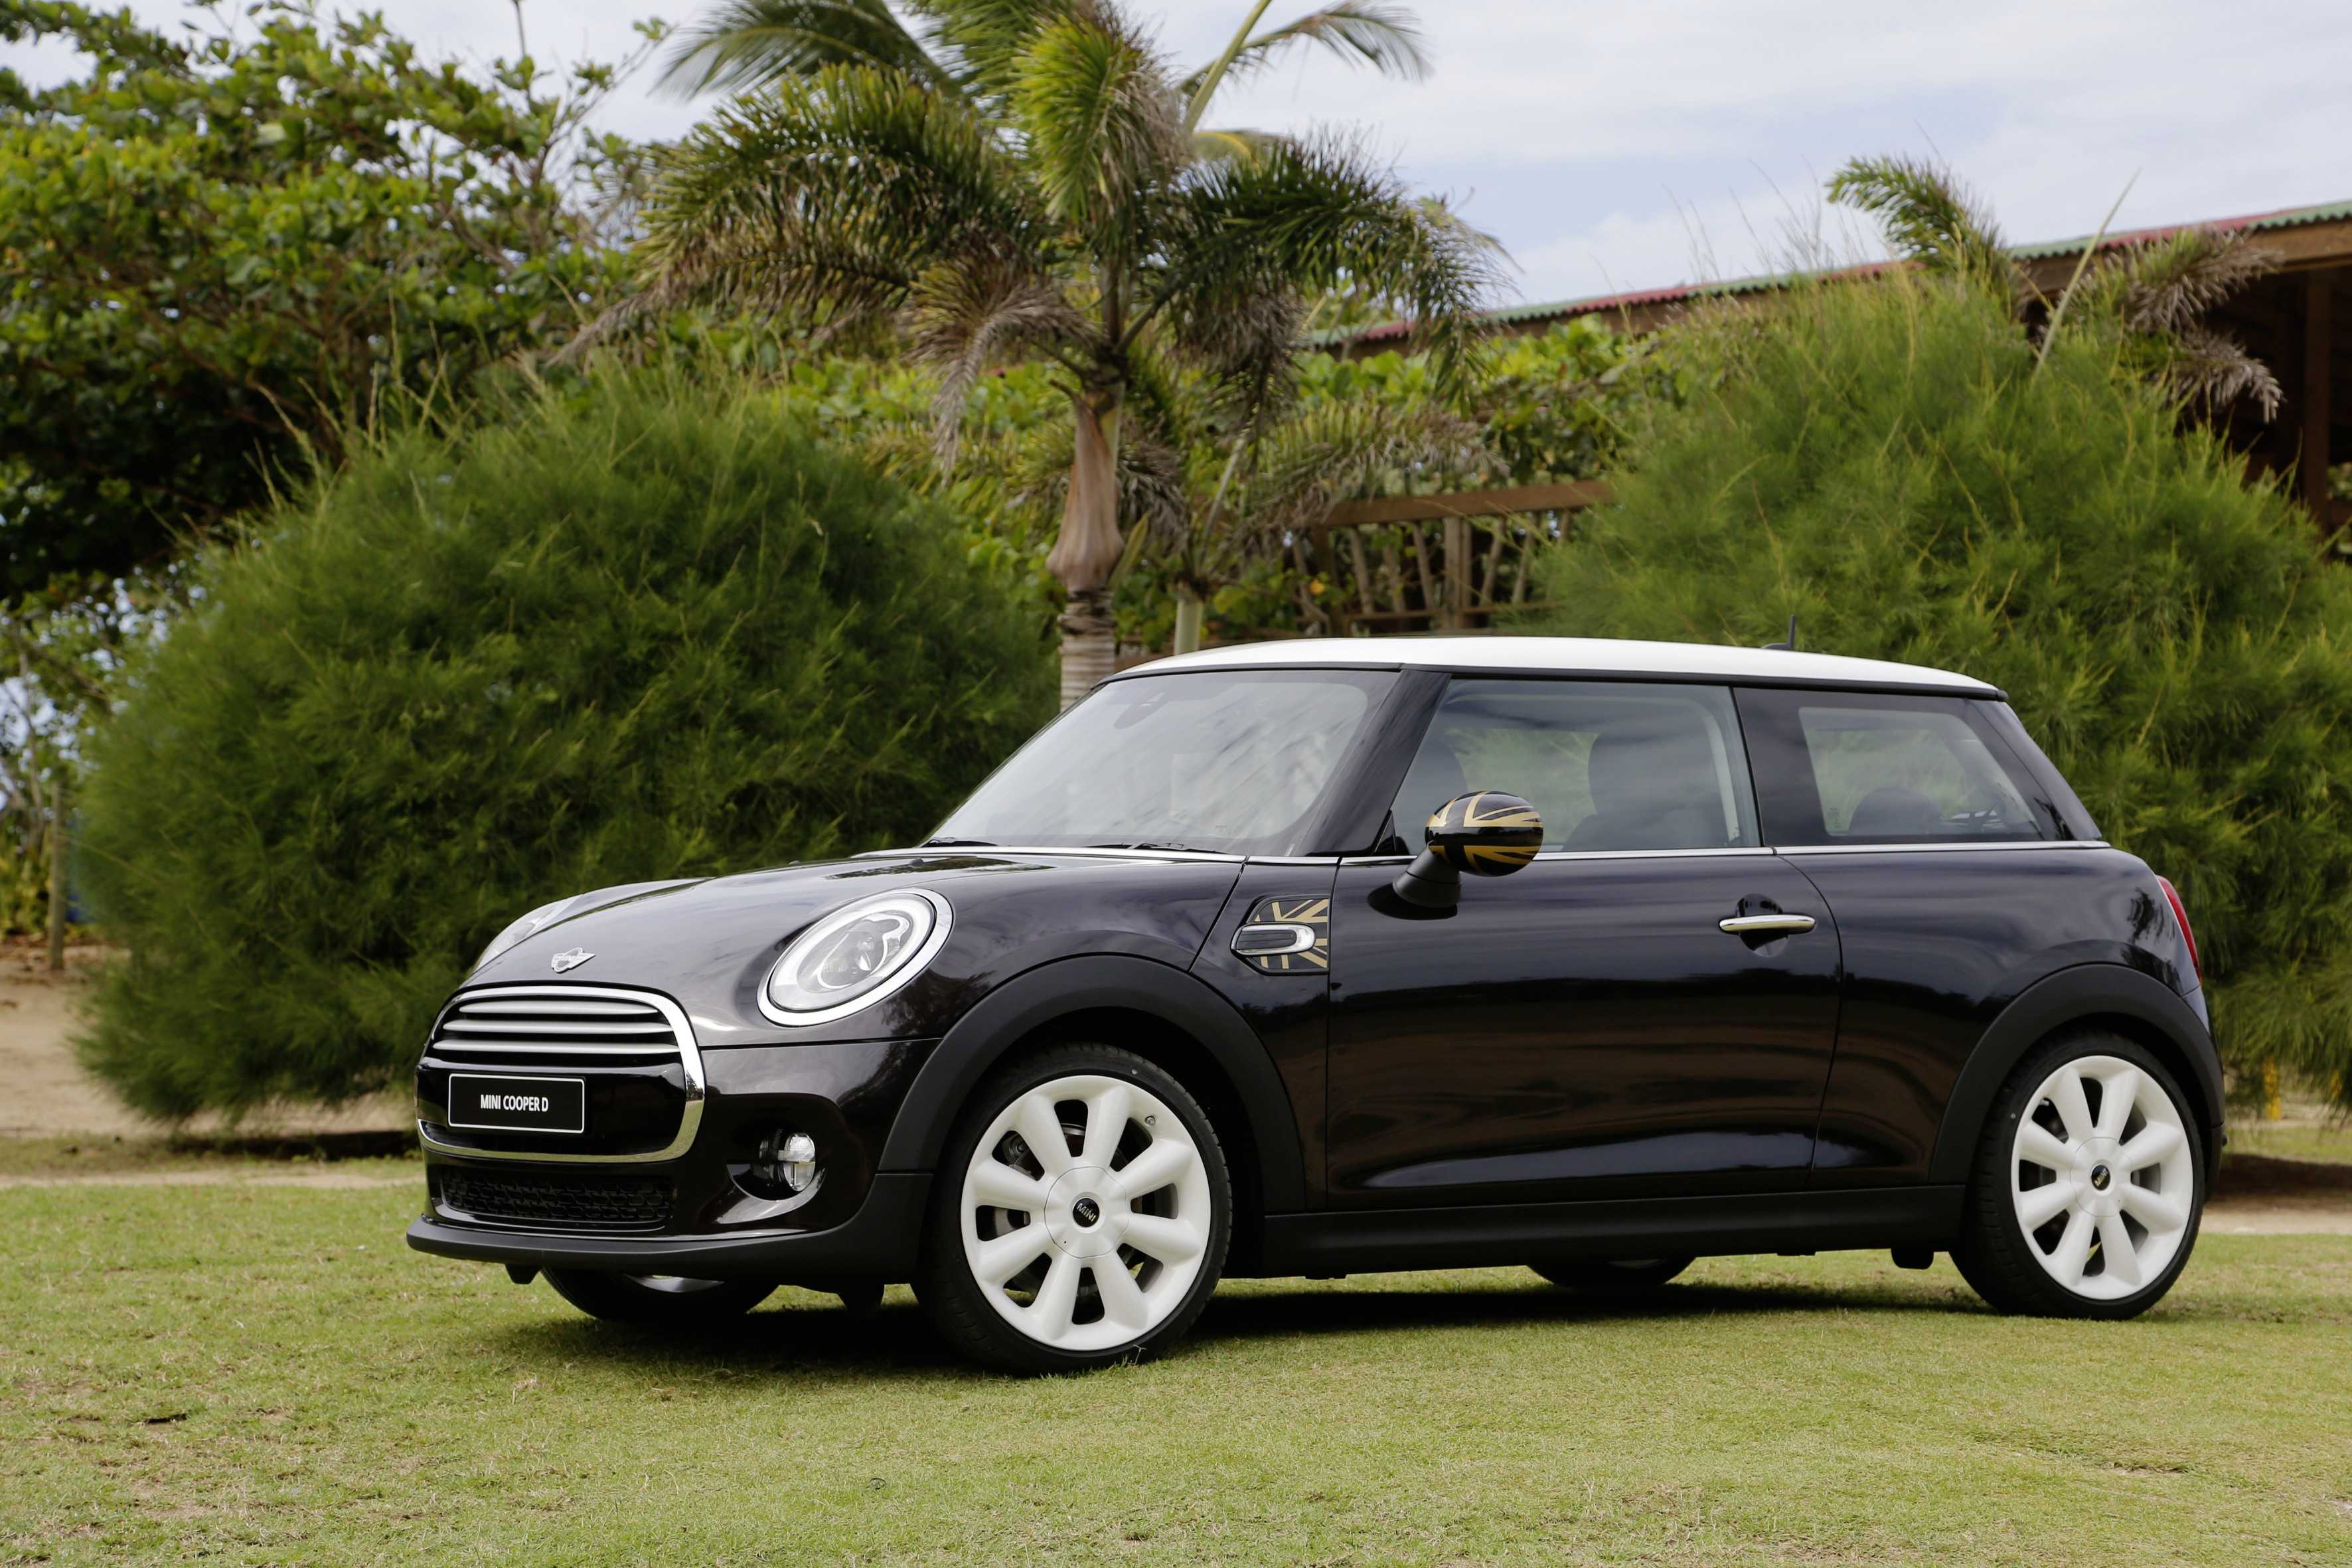 door test driving review reviews mini car cooper road